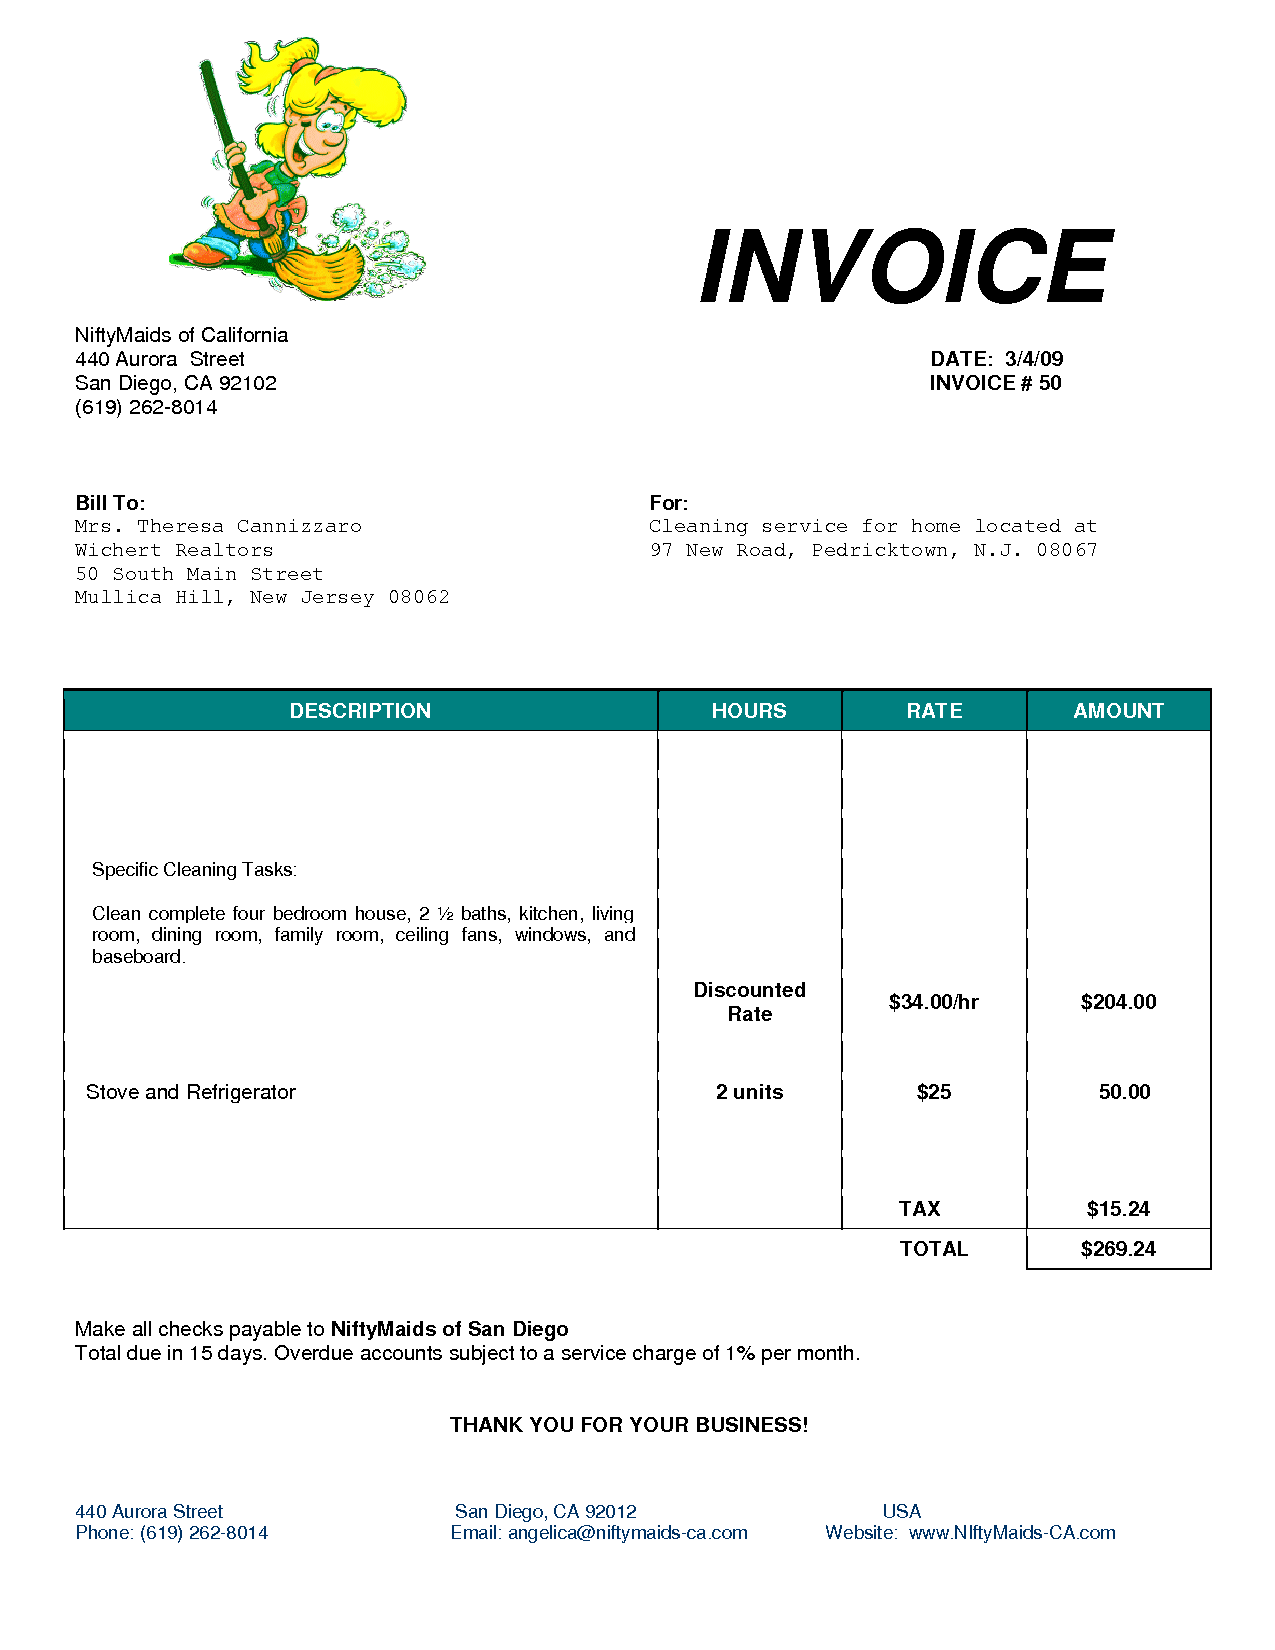 Business Invoice Novaondafm - Maintenance invoice template free